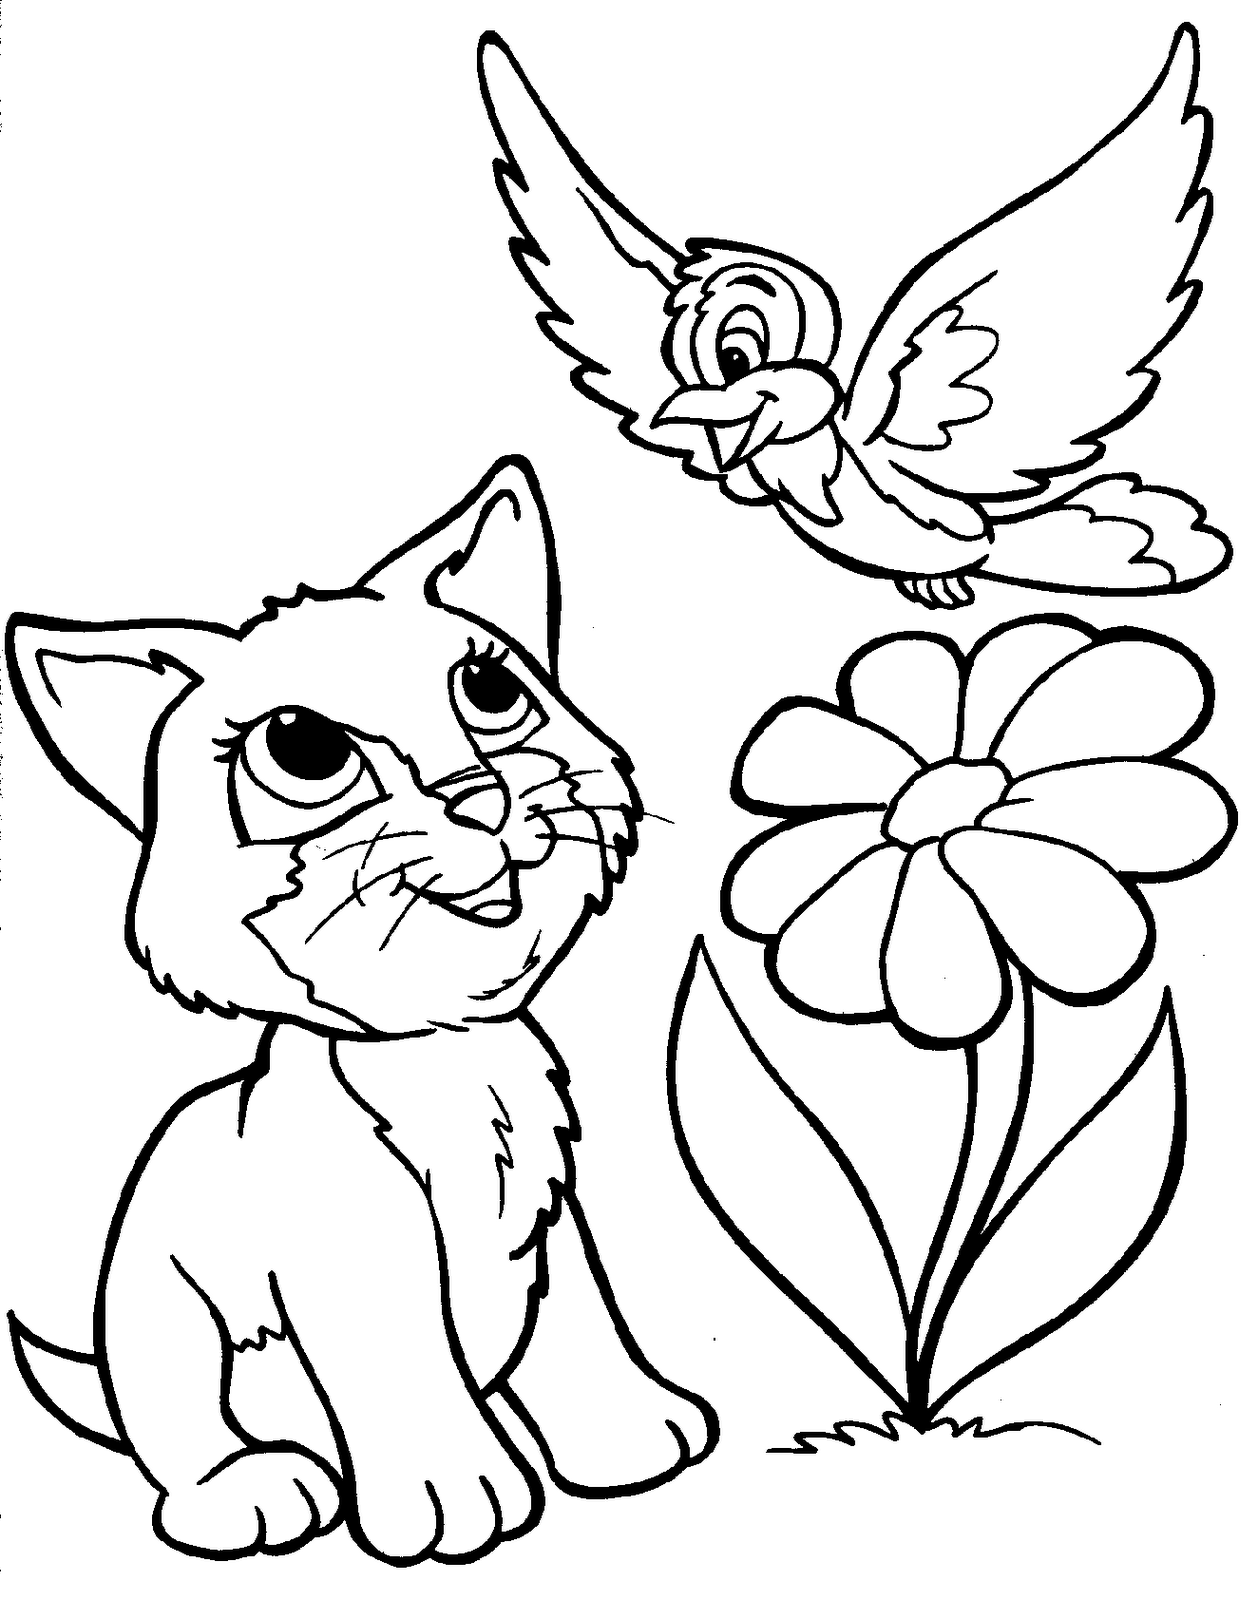 animal coloring pages toddlers wild animal coloring pages best coloring pages for kids pages toddlers coloring animal